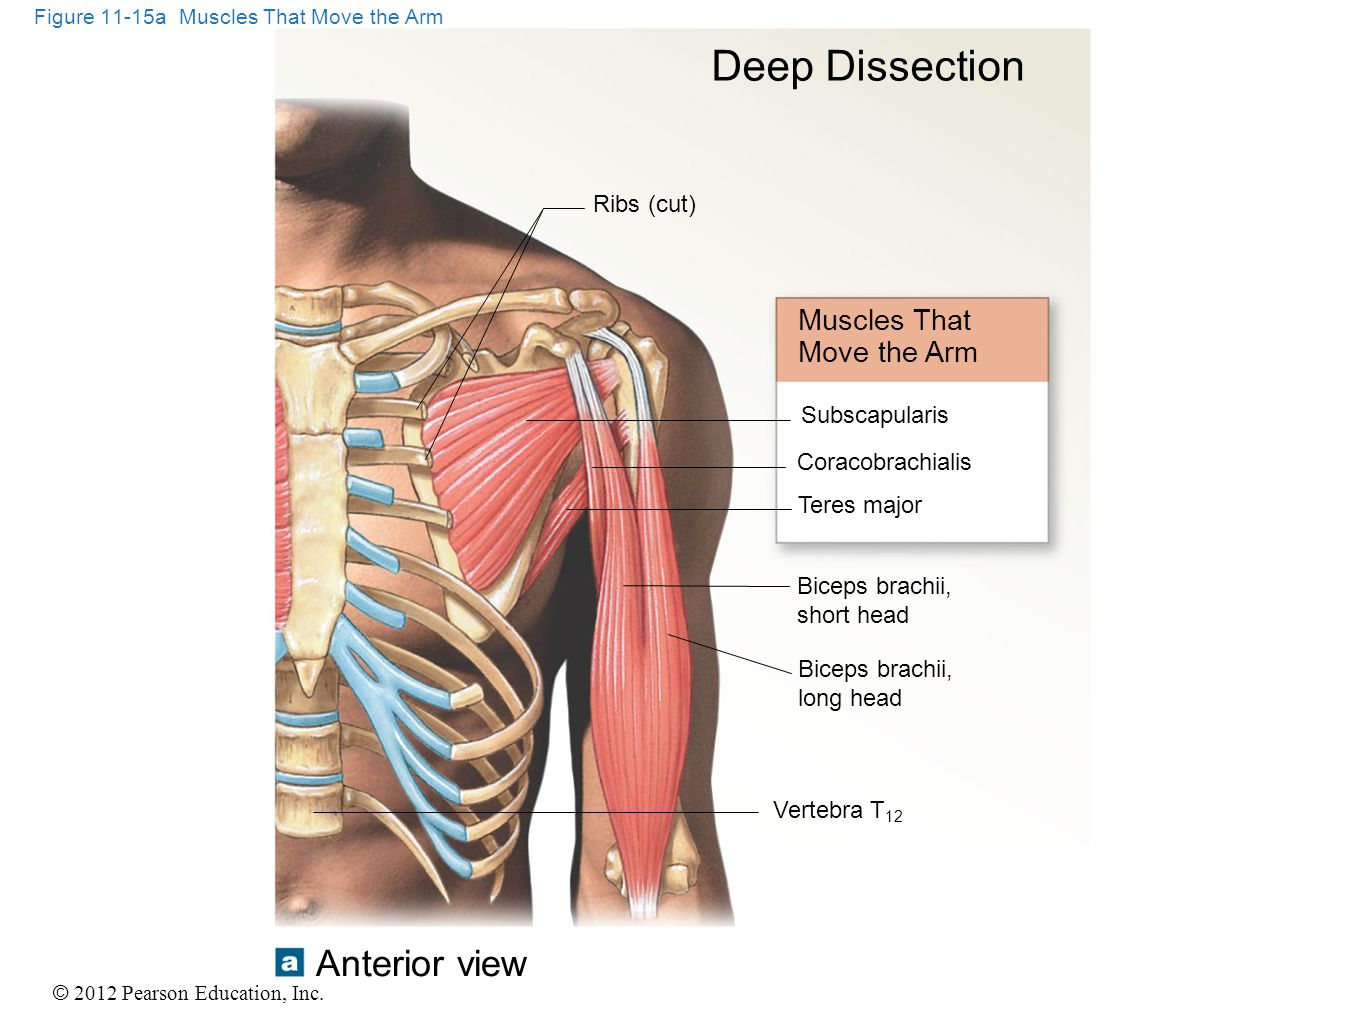 © 2012 Pearson Education, Inc. Figure 11-15a Muscles That Move the Arm Deep Dissection Muscles That Move the Arm Ribs (cut) Subscapularis Coracobrachi